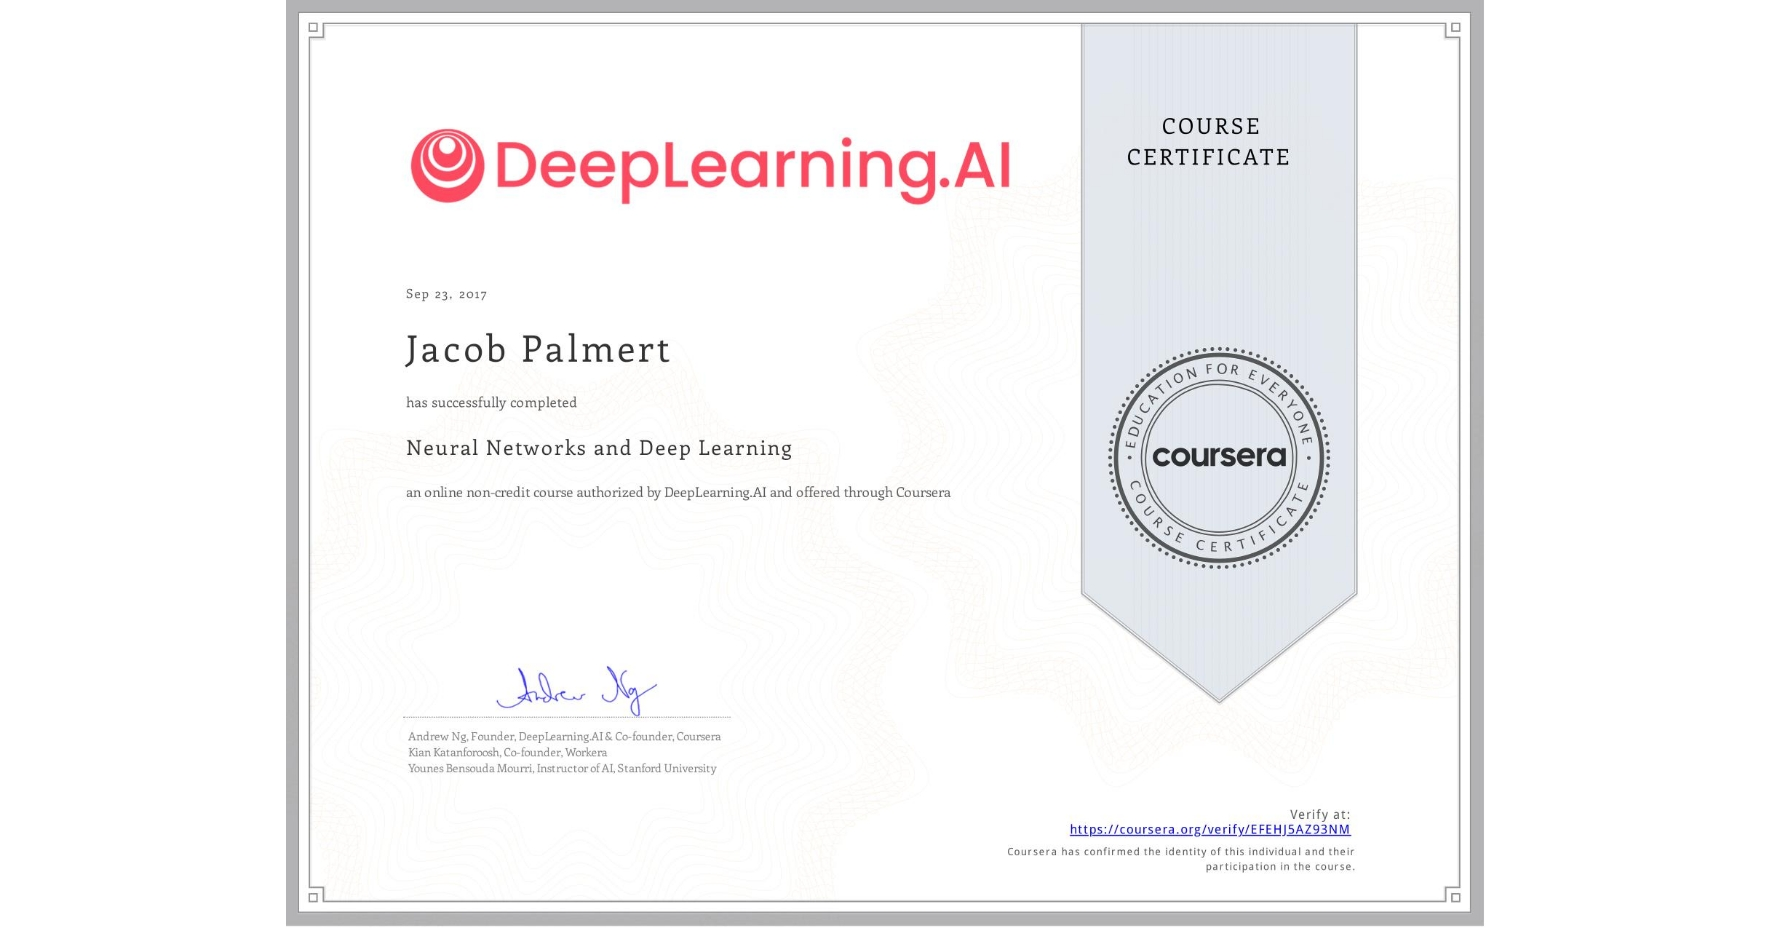 View certificate for Jacob Palmert, Neural Networks and Deep Learning, an online non-credit course authorized by DeepLearning.AI and offered through Coursera